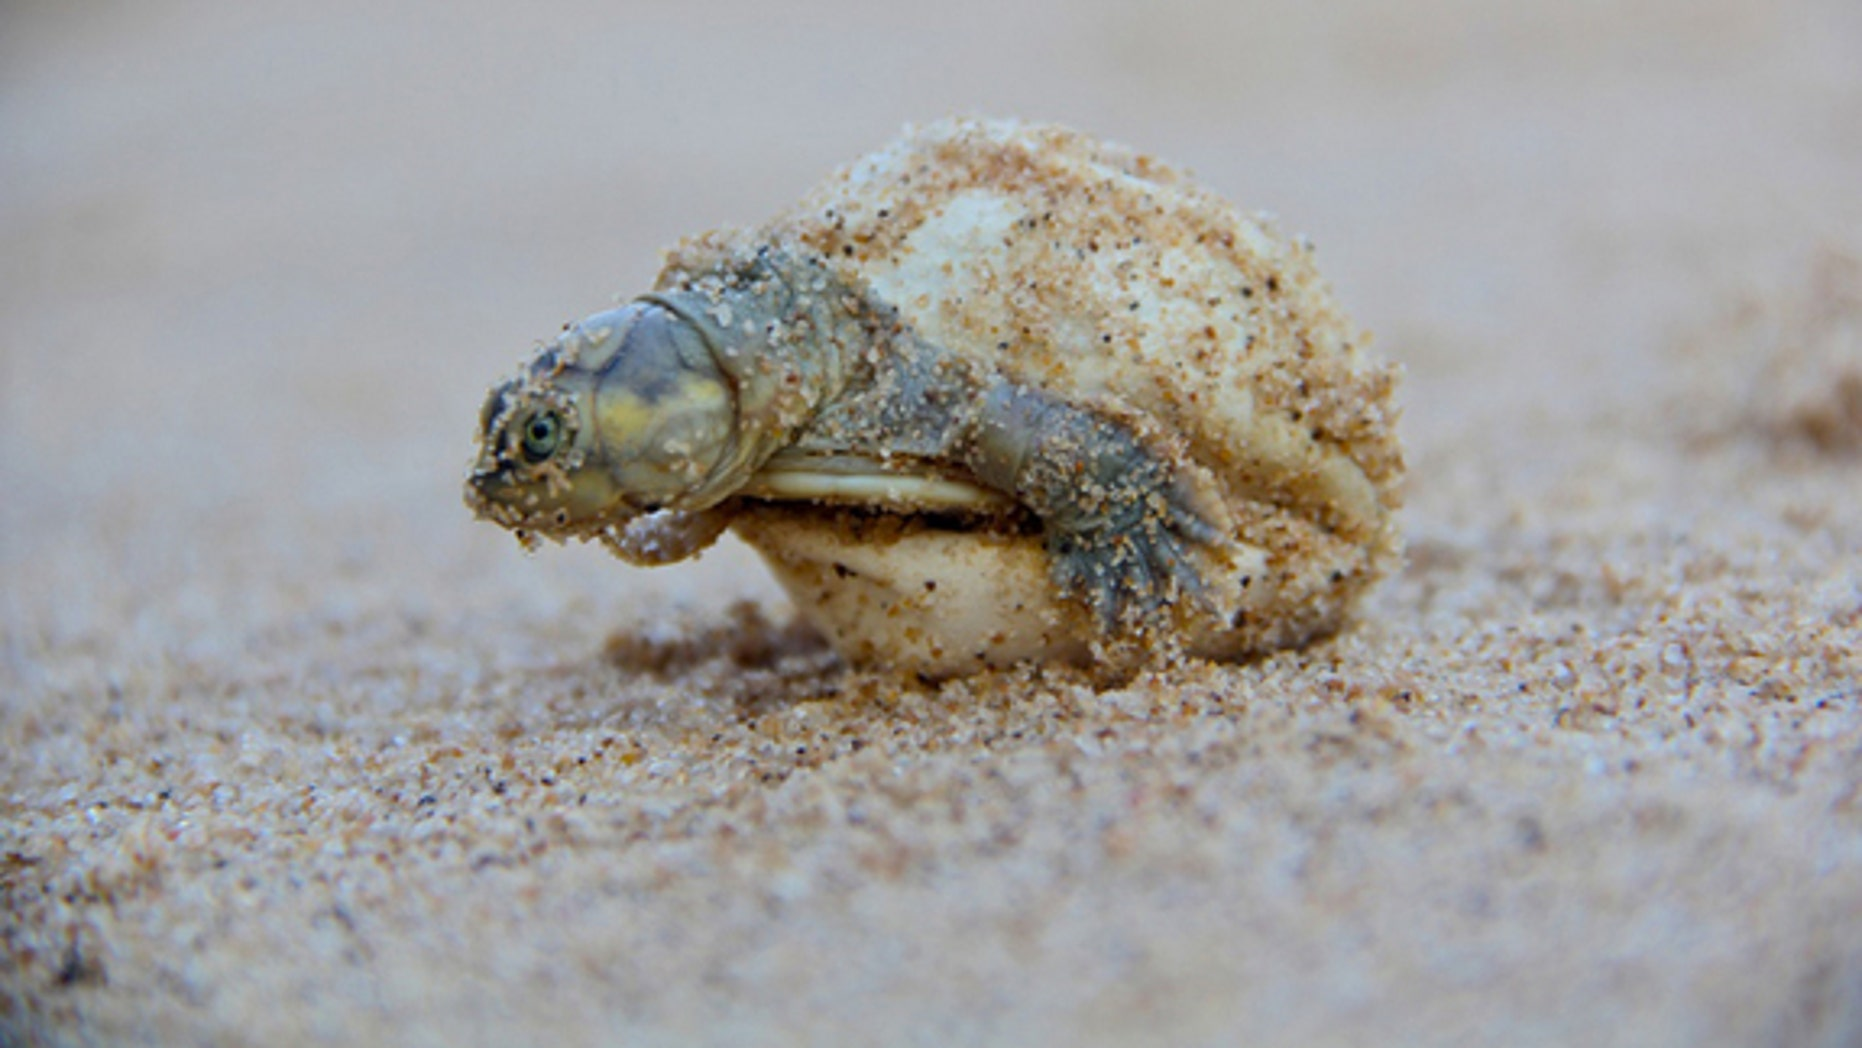 An endangered giant South American river turtle hatchling.